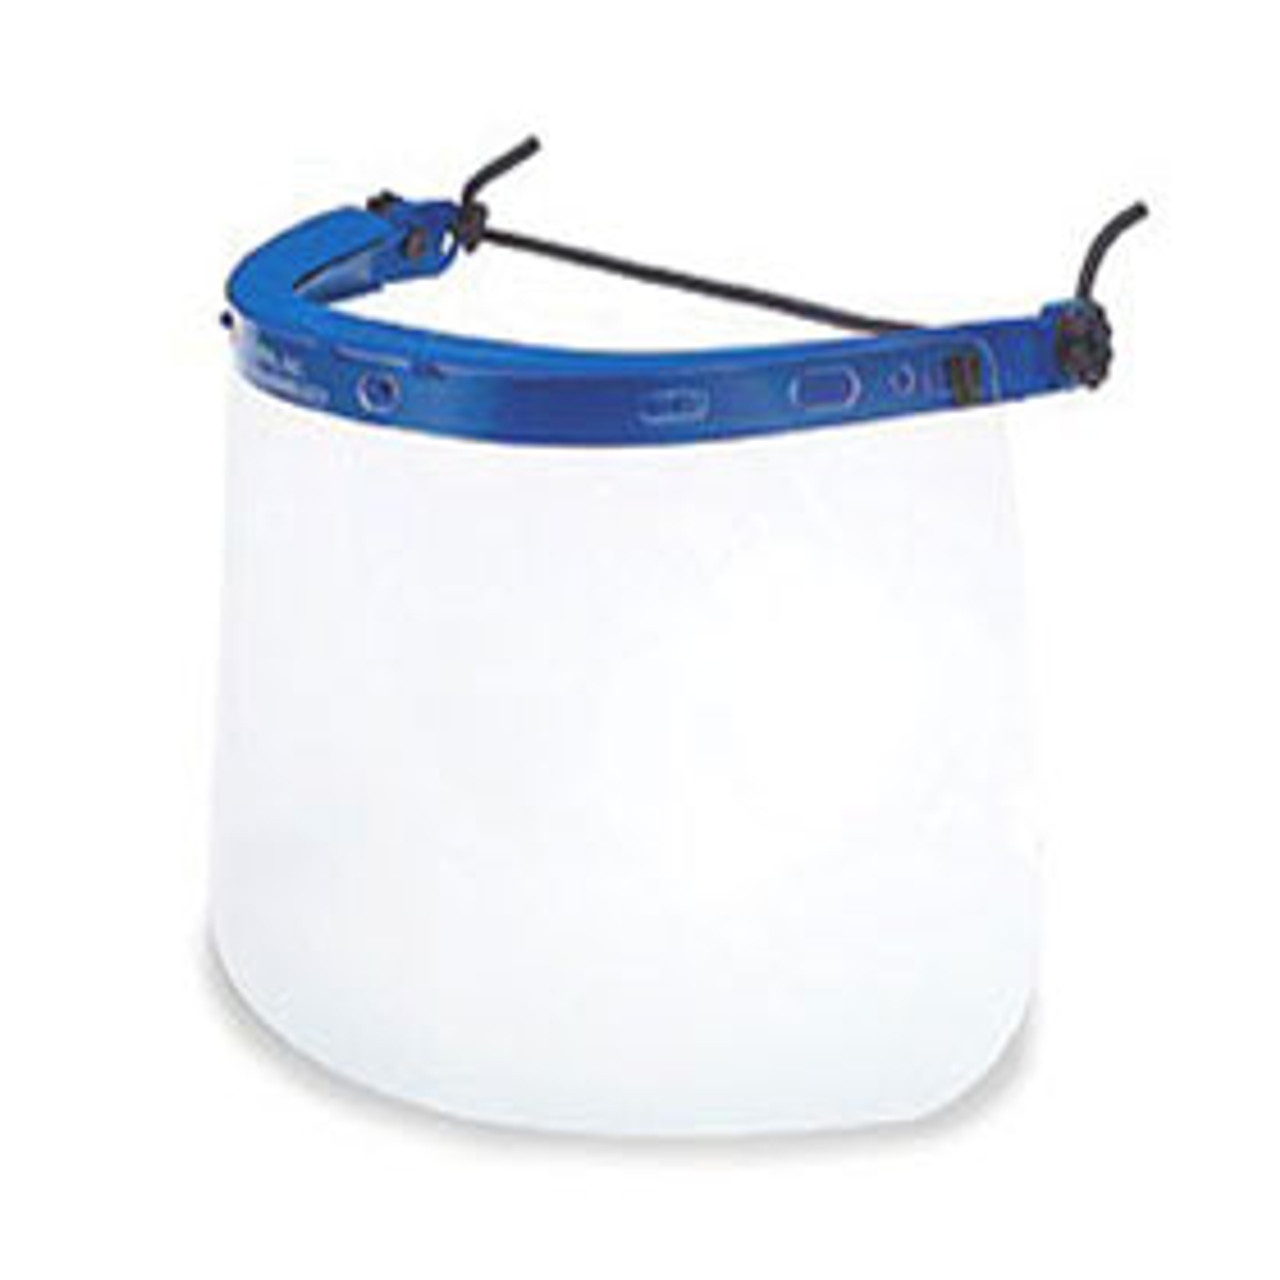 "Clear Faceshield, 8"" x 14"" (HEADBAND NOT INCLUDED)"